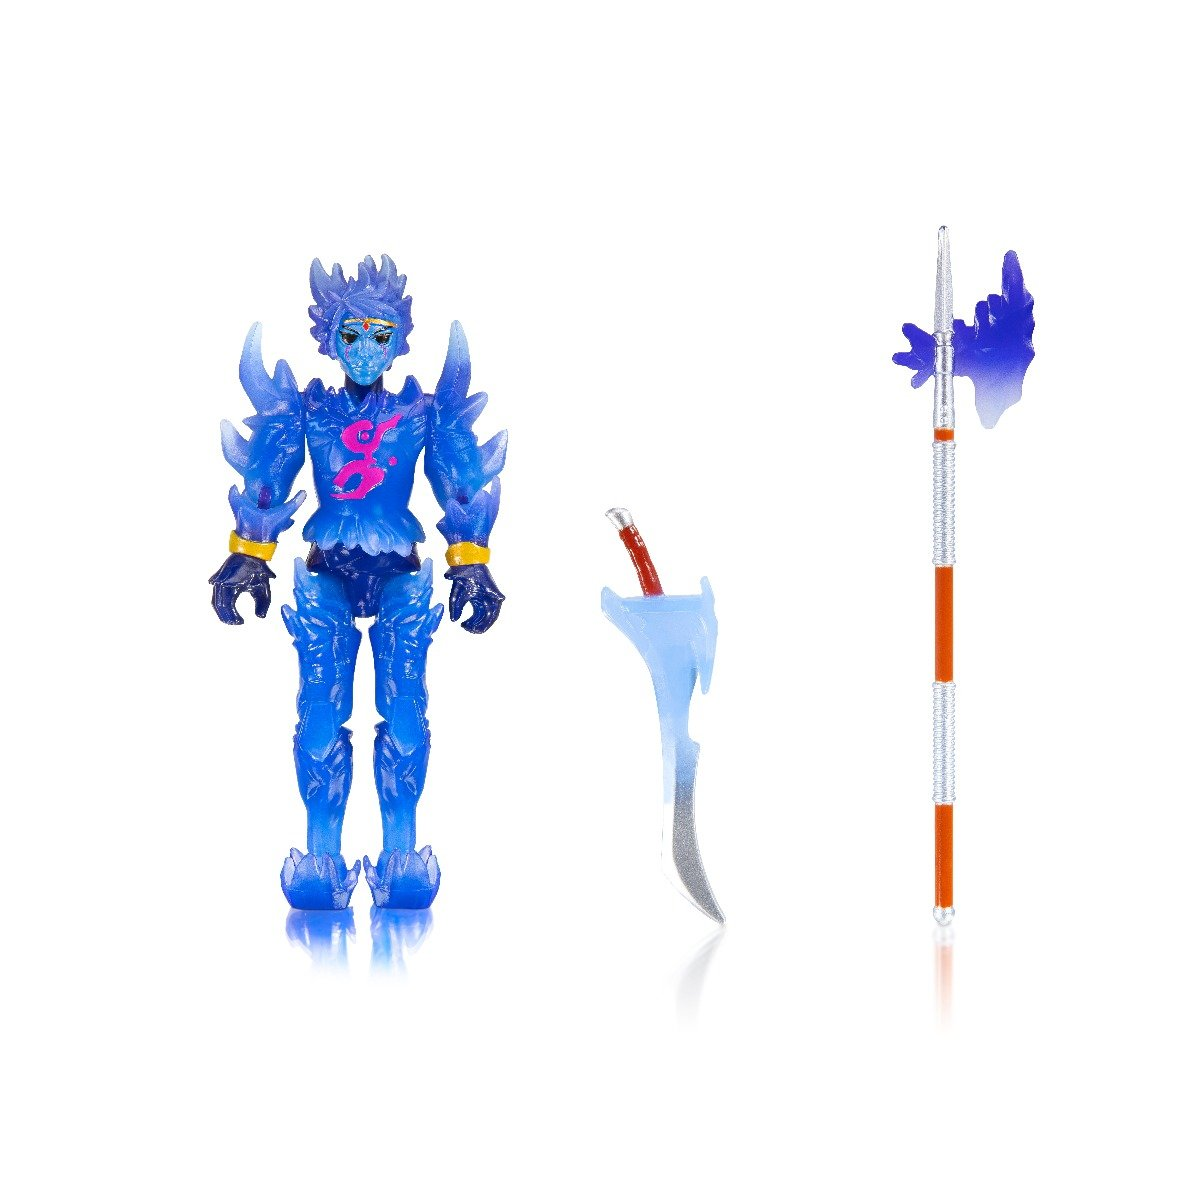 Figurina Roblox, Crysttelo The Crystal God, S7, ROB0272